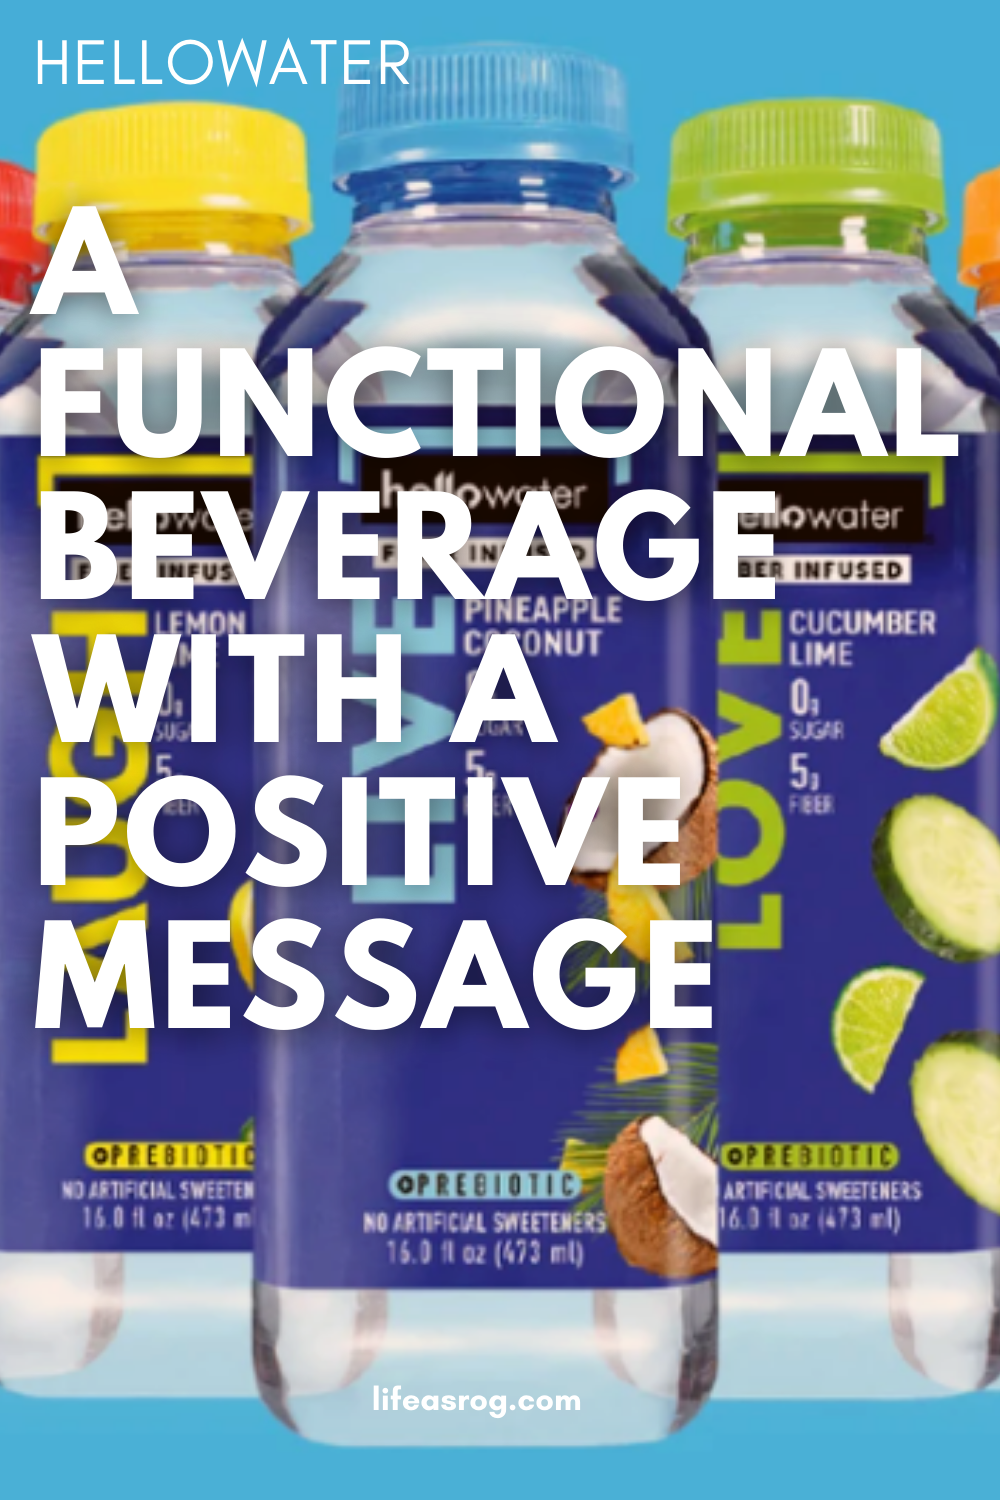 hellowater: A Functional Beverage with a Positive Message